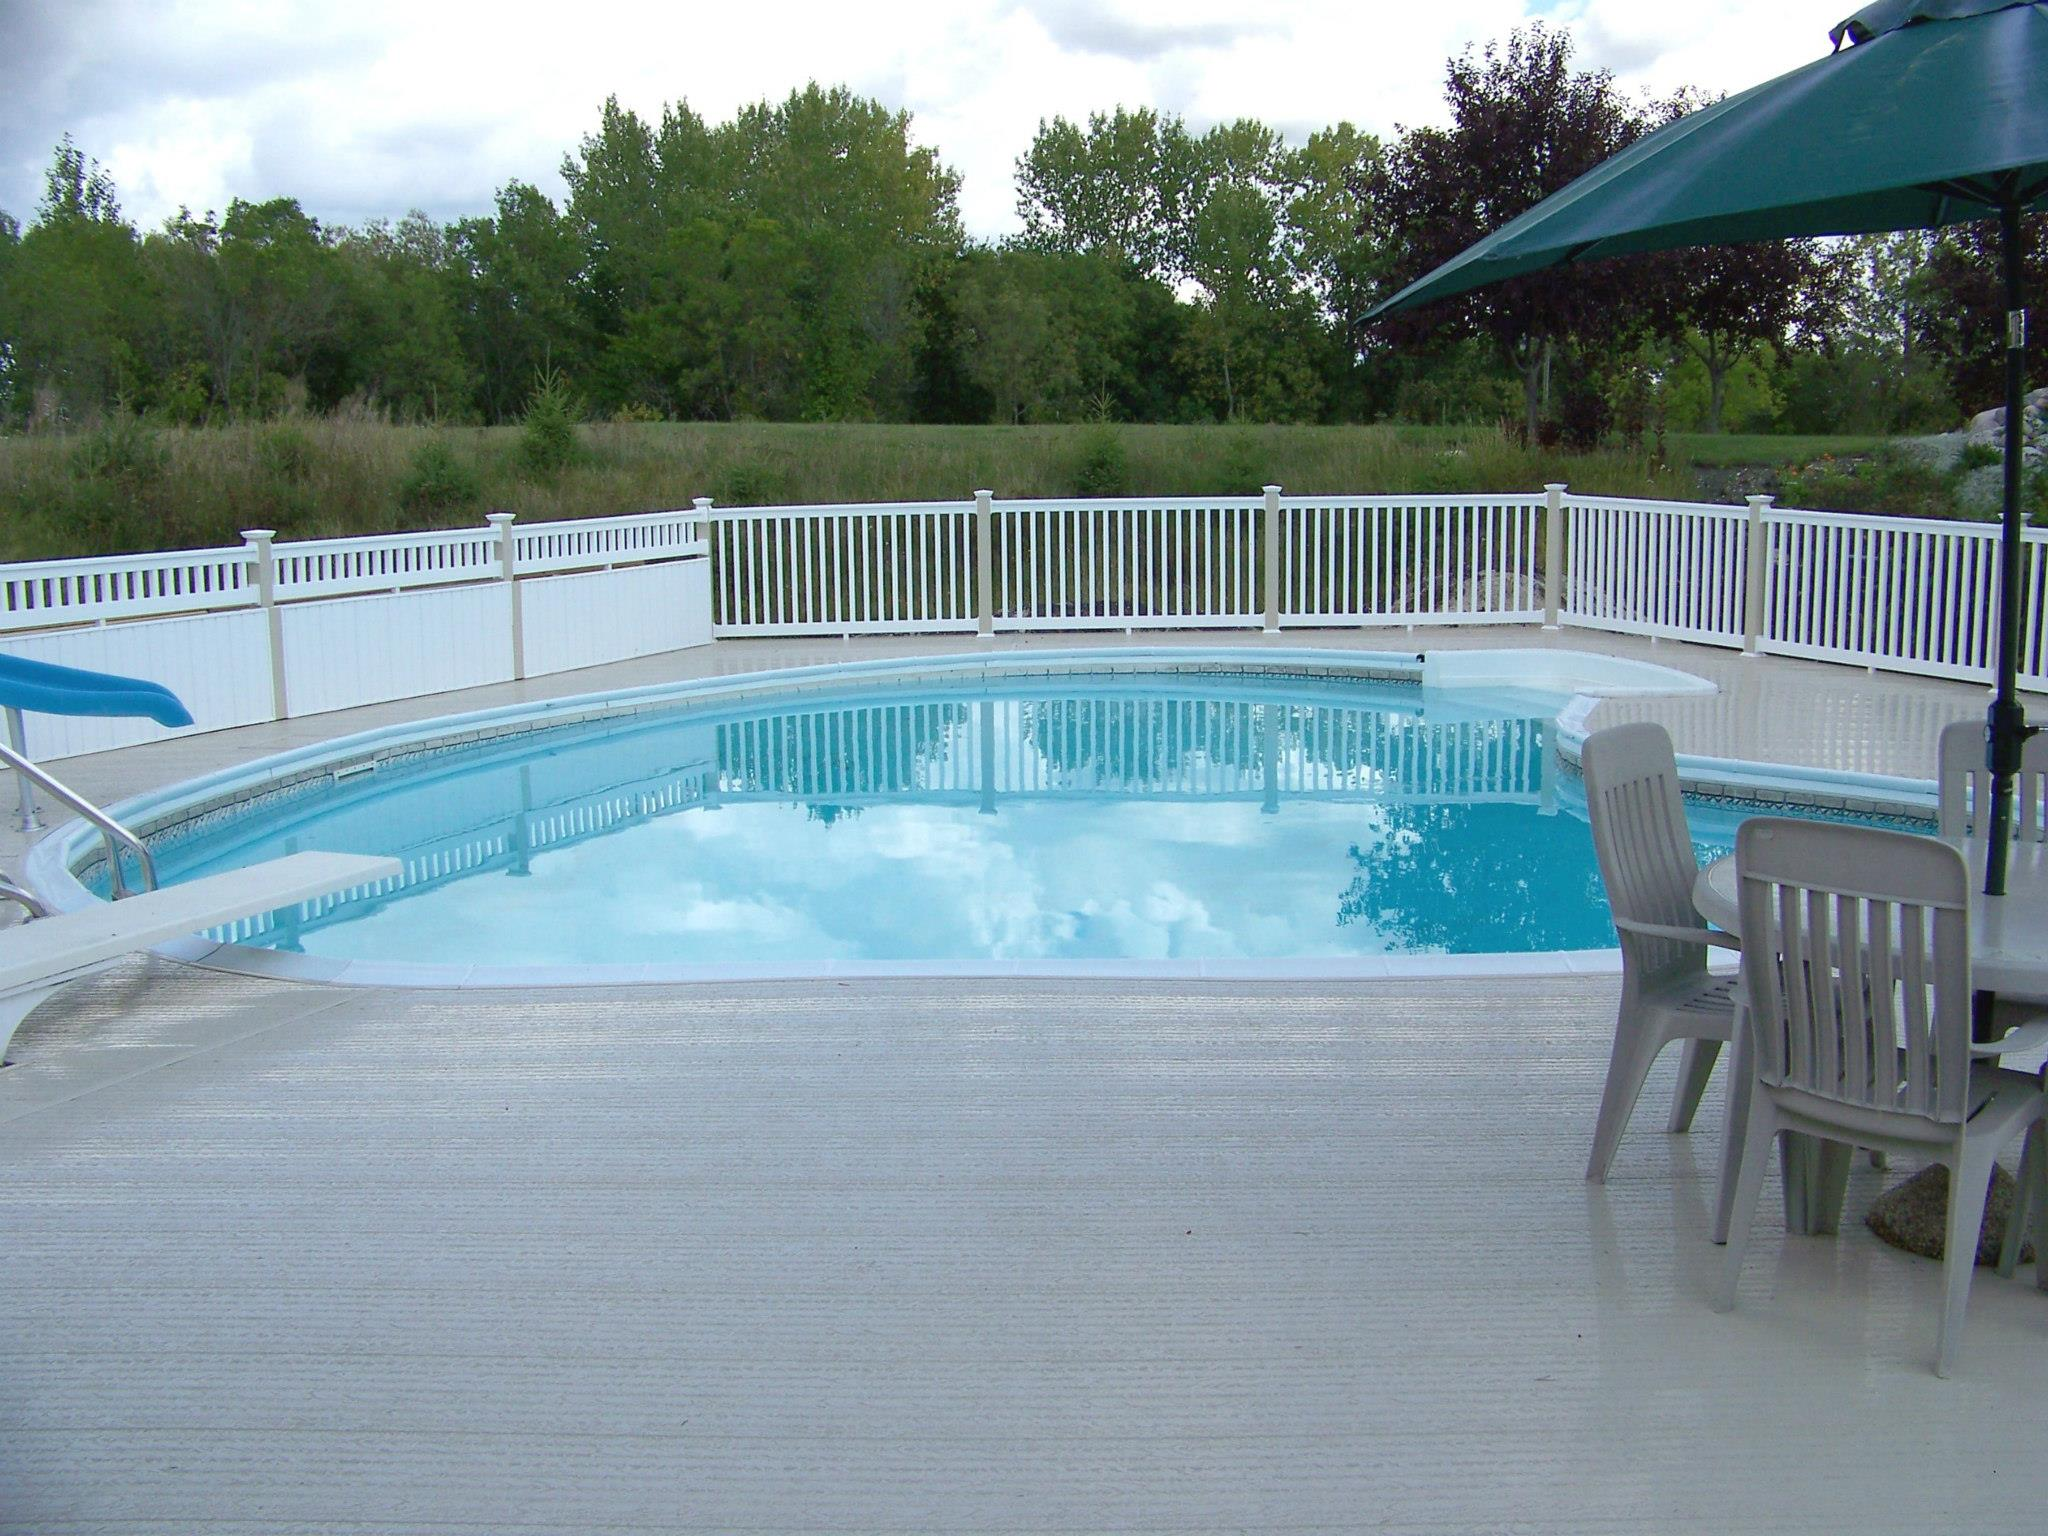 Pool with surrounding fence